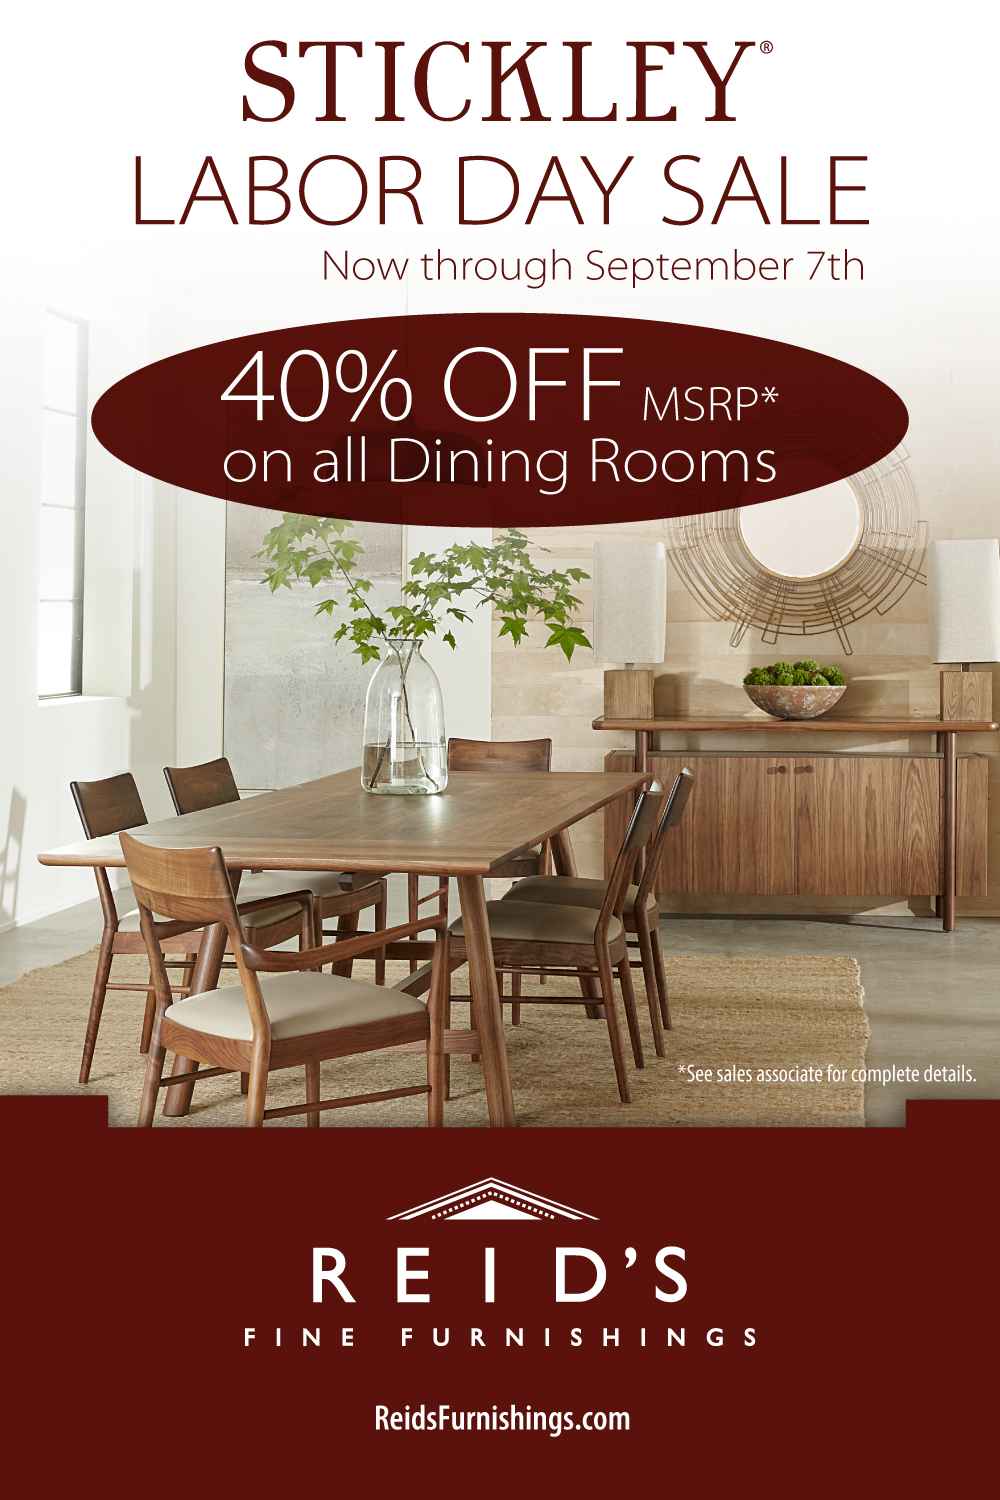 Stickley Labor Day Sale